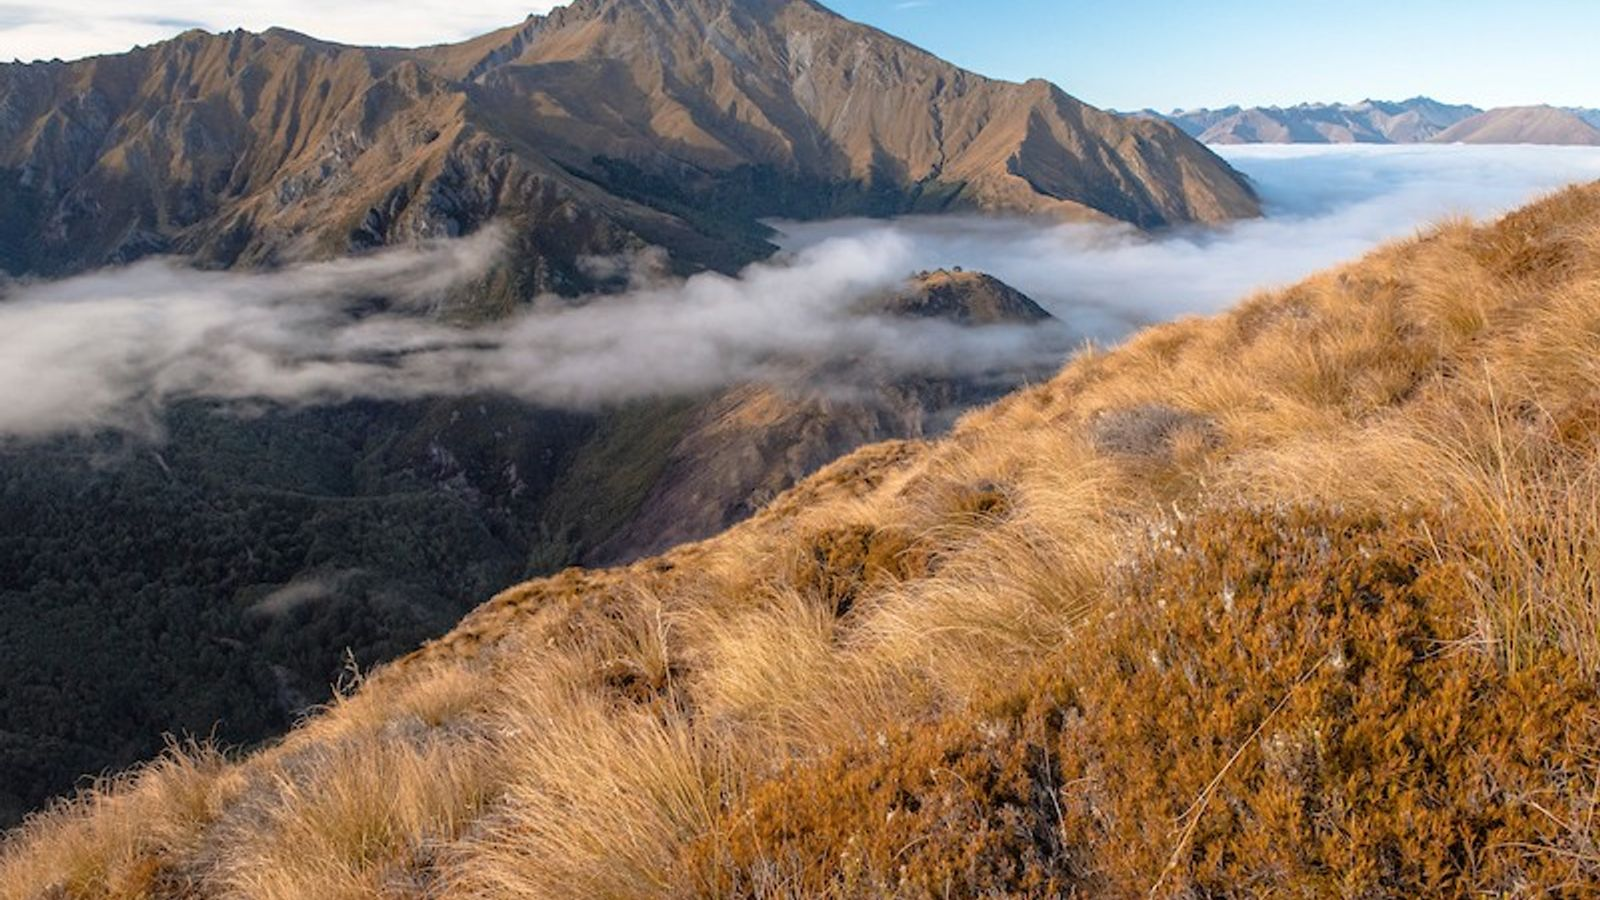 The morning sun hits the rugged landscapes near Mount Crichton above cloud-covered Lake Wakatipu near Queenstown, ...